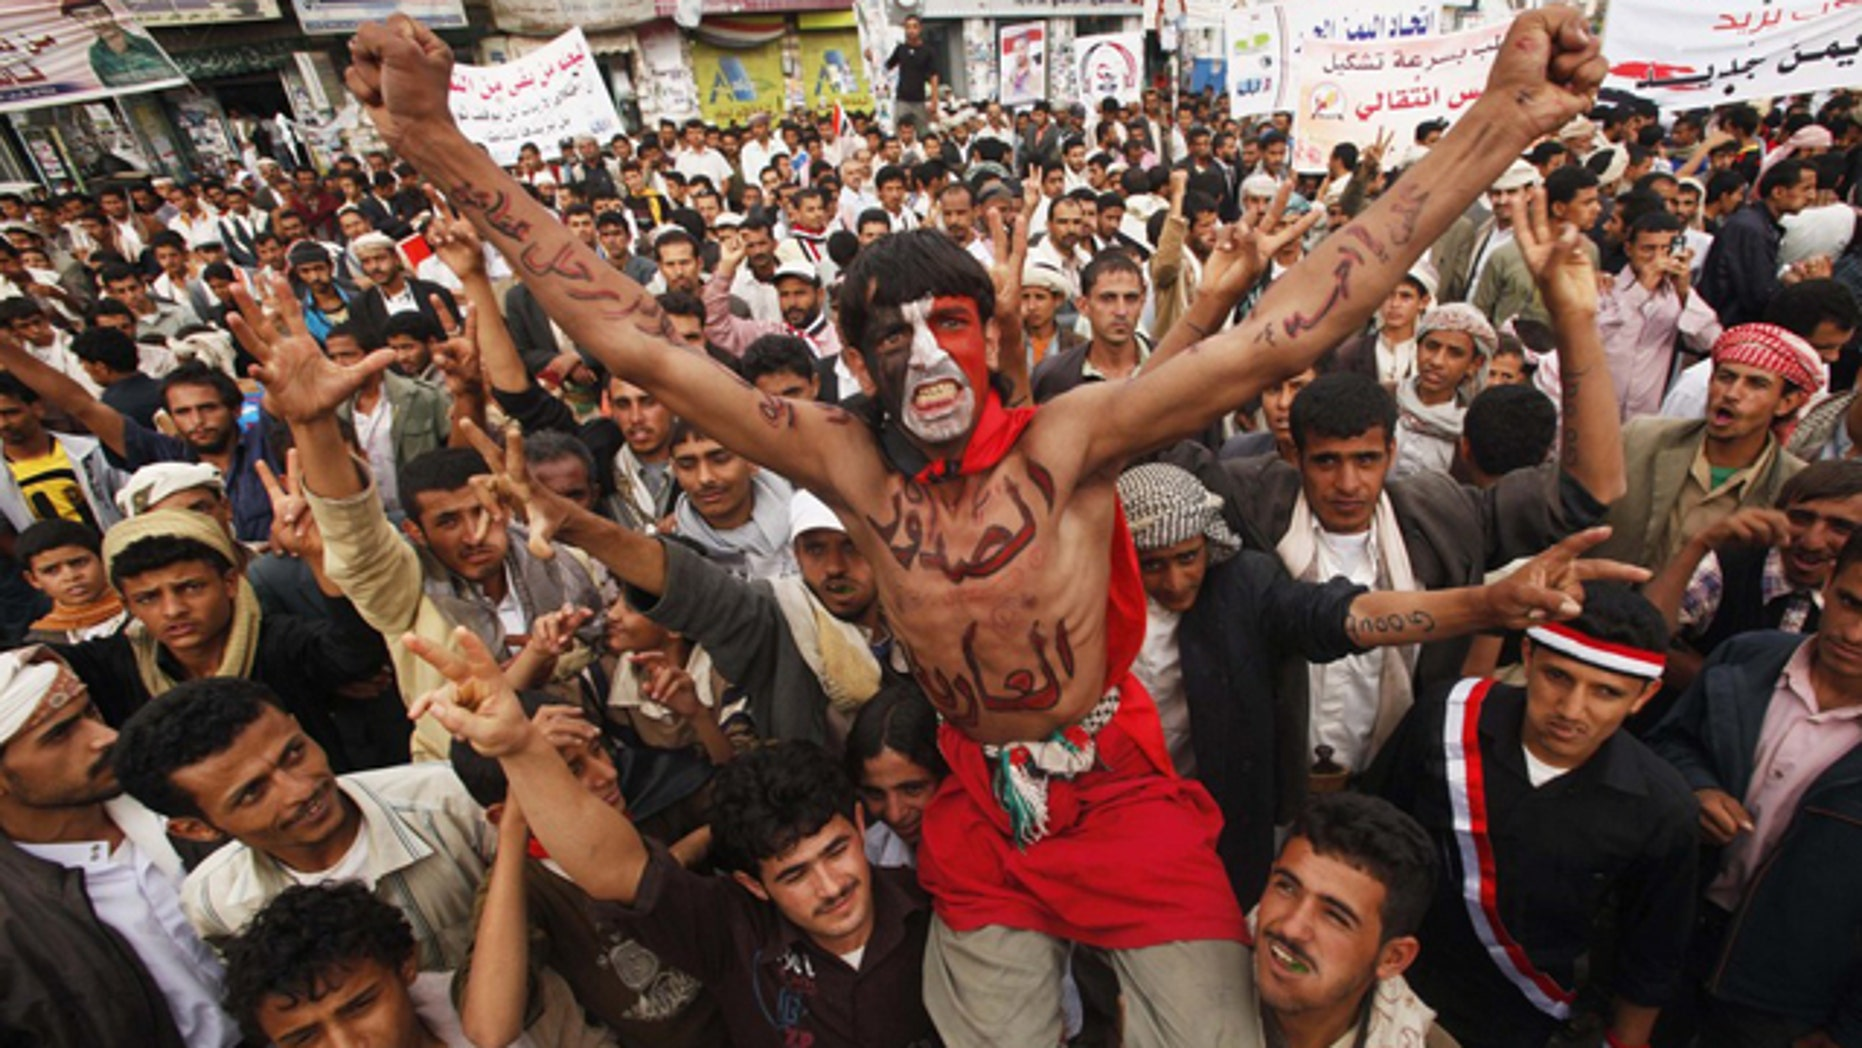 June 21: Anti-government protesters shout slogans during a demonstration to demand the ouster of Yemen's President Ali Abdullah Saleh in Sanaa.